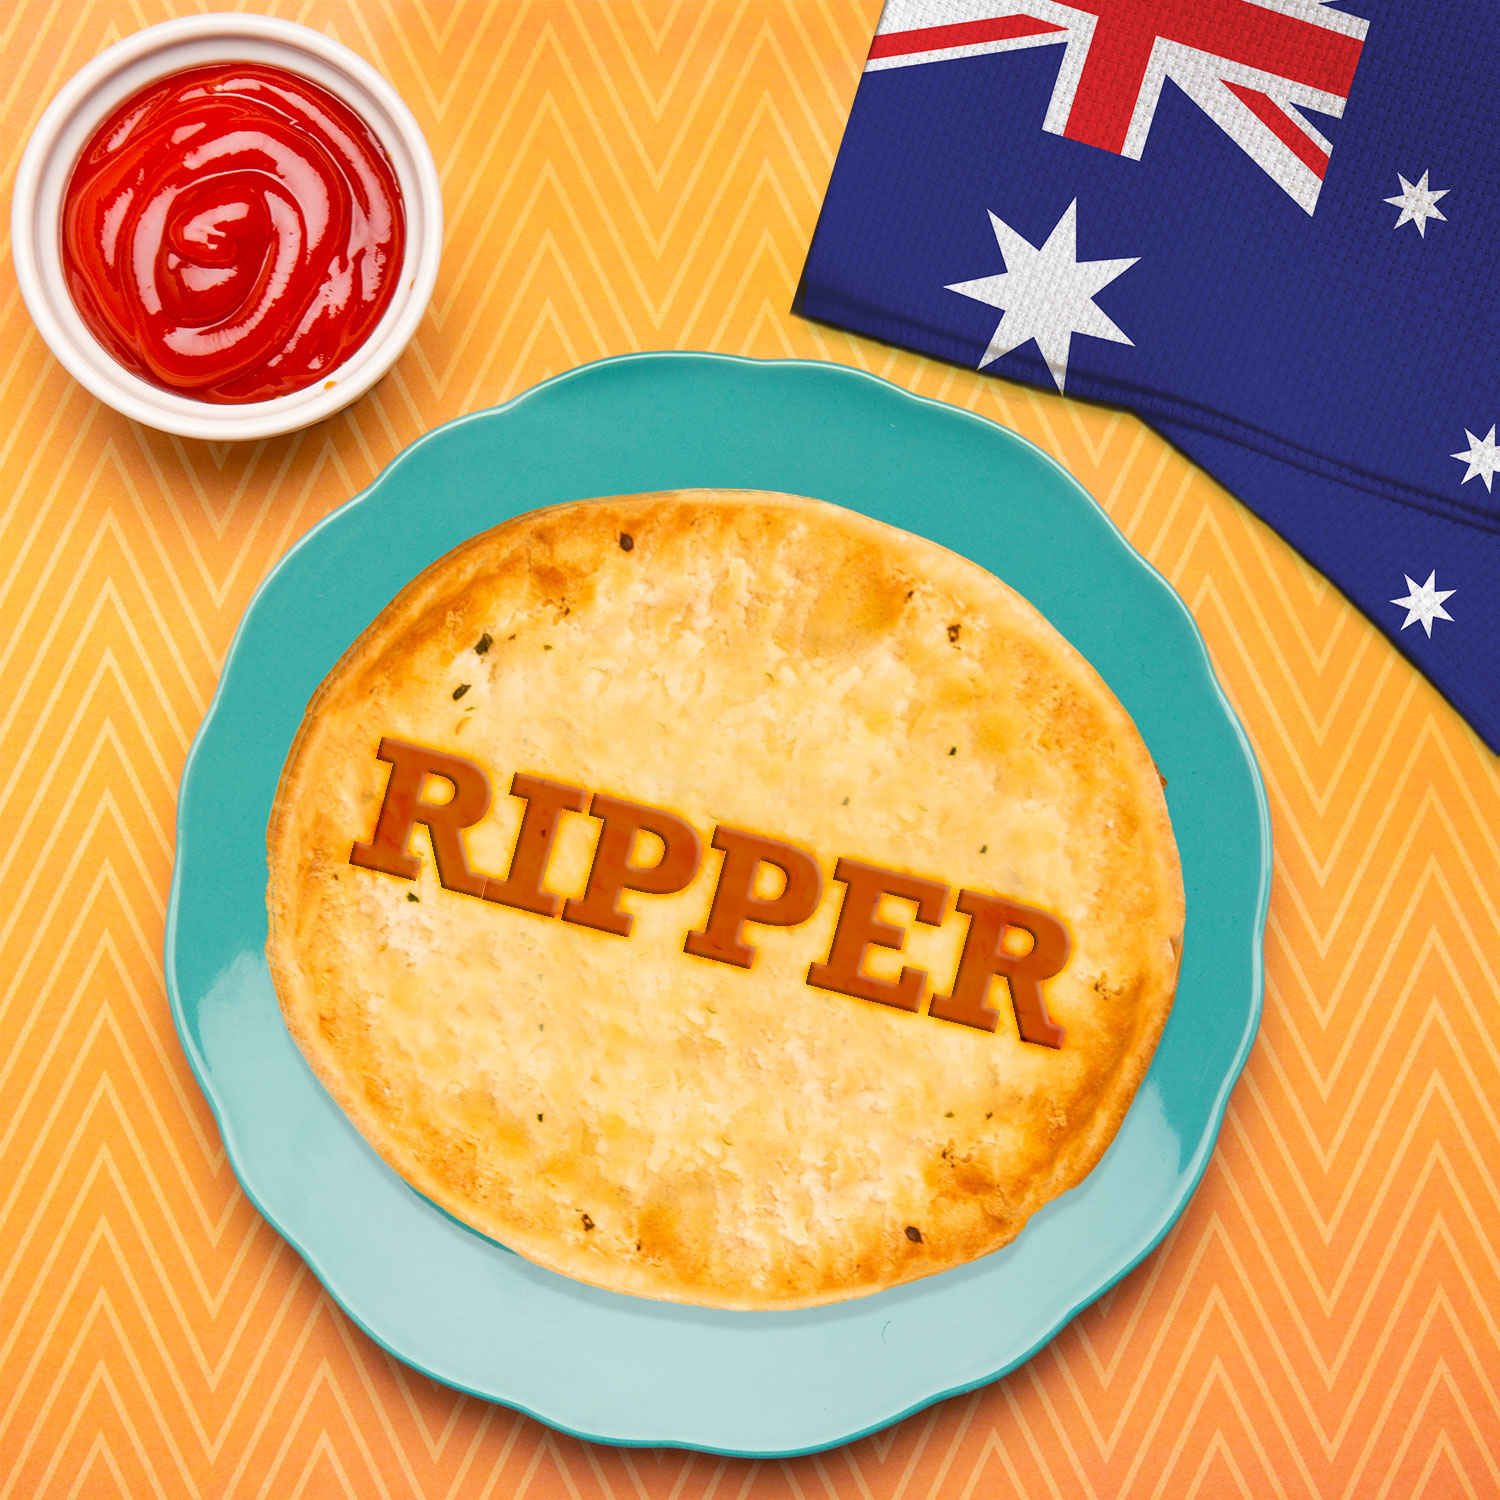 Ripper: Really Great